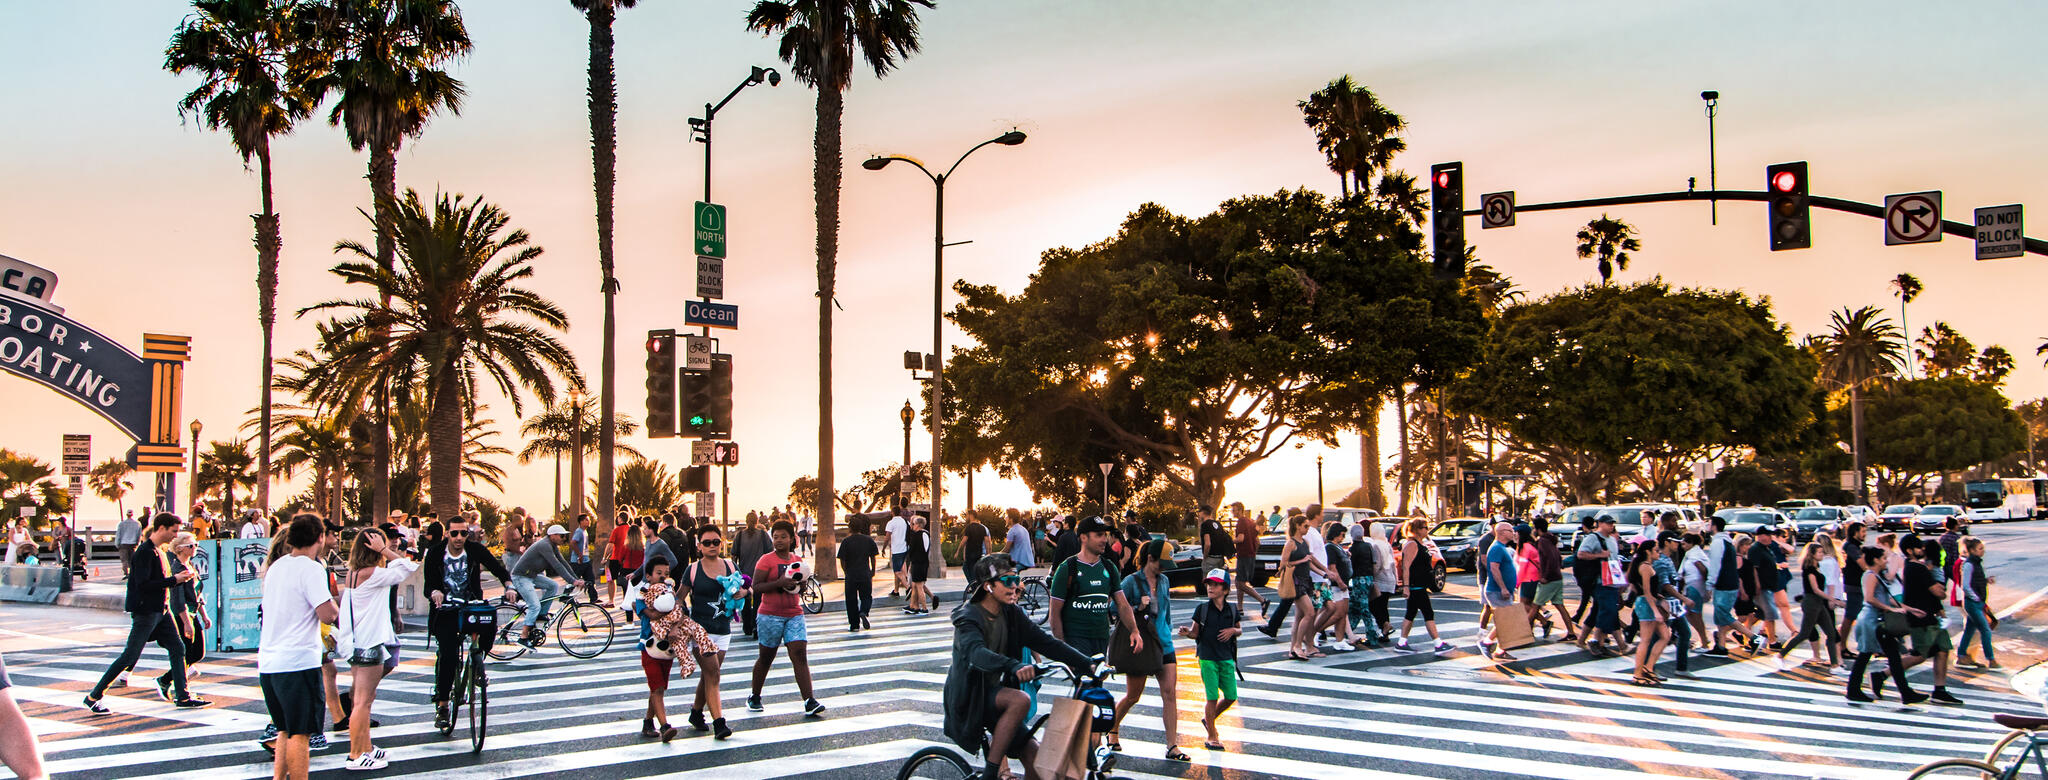 crosswalk in los angeles with palm trees and people